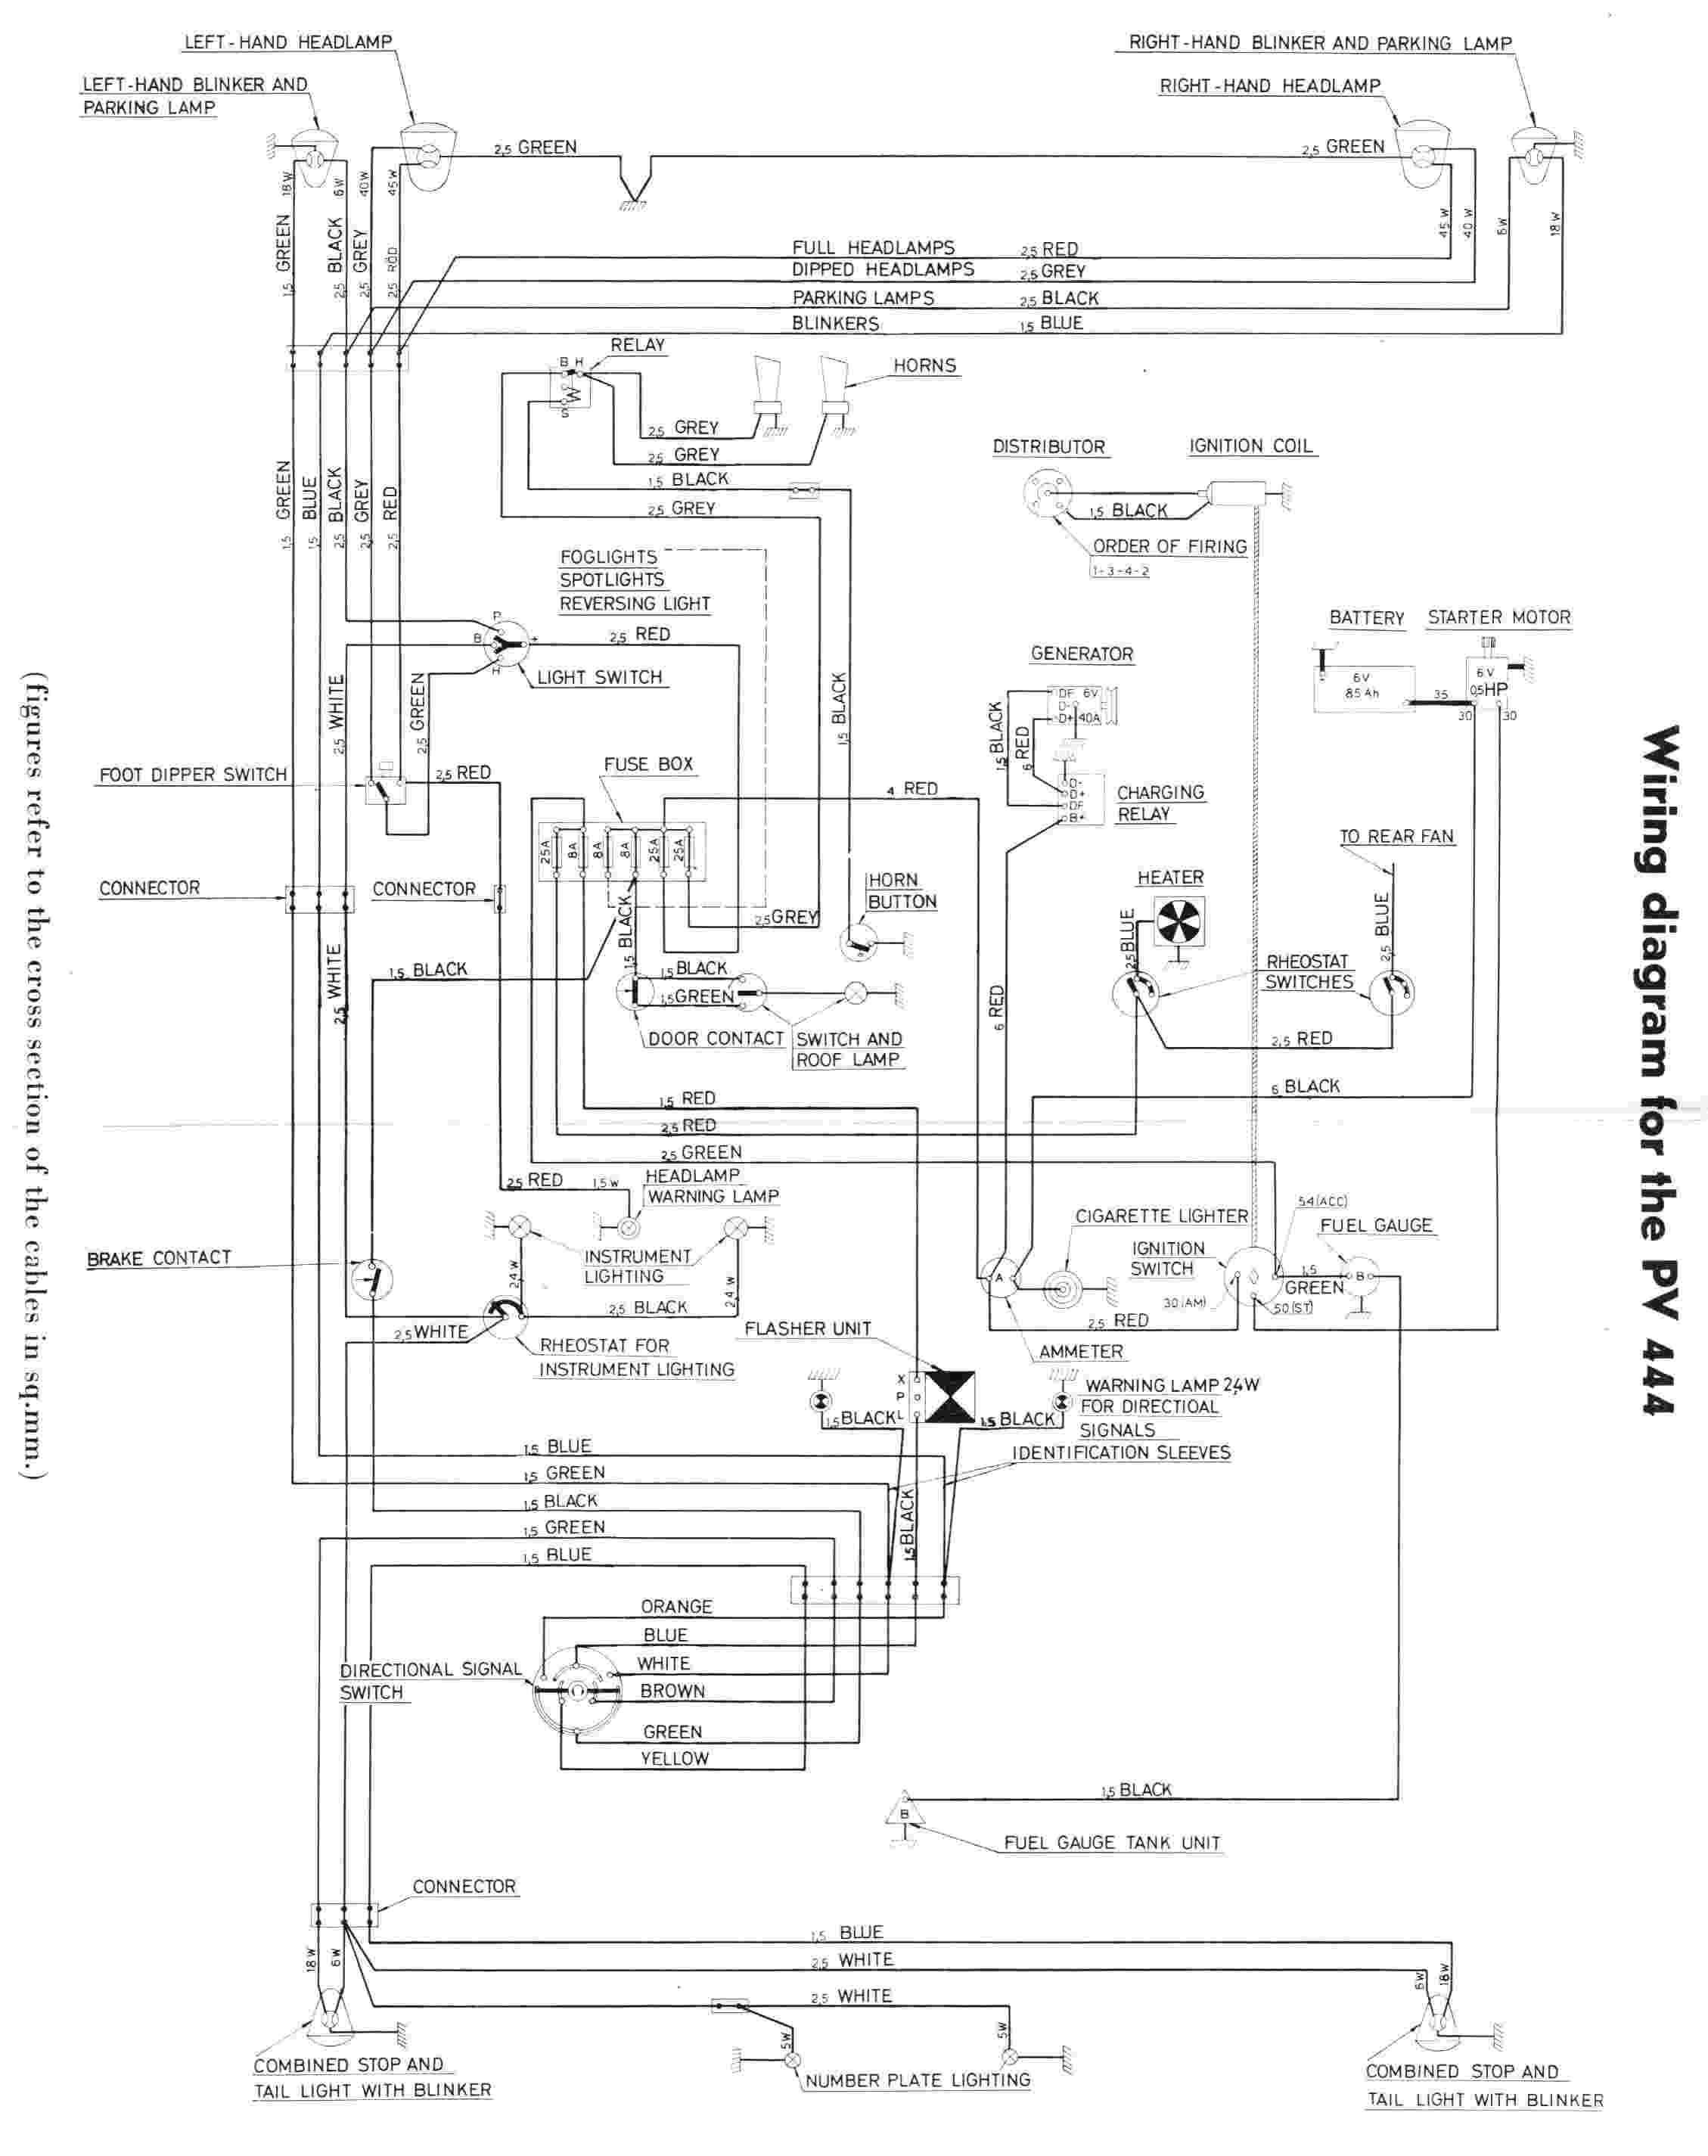 volvo 142 wiring diagram basic wiring diagram u2022 rh dev spokeapartments com 1999 volvo semi truck fuse diagram 2006 volvo semi truck fuse diagram